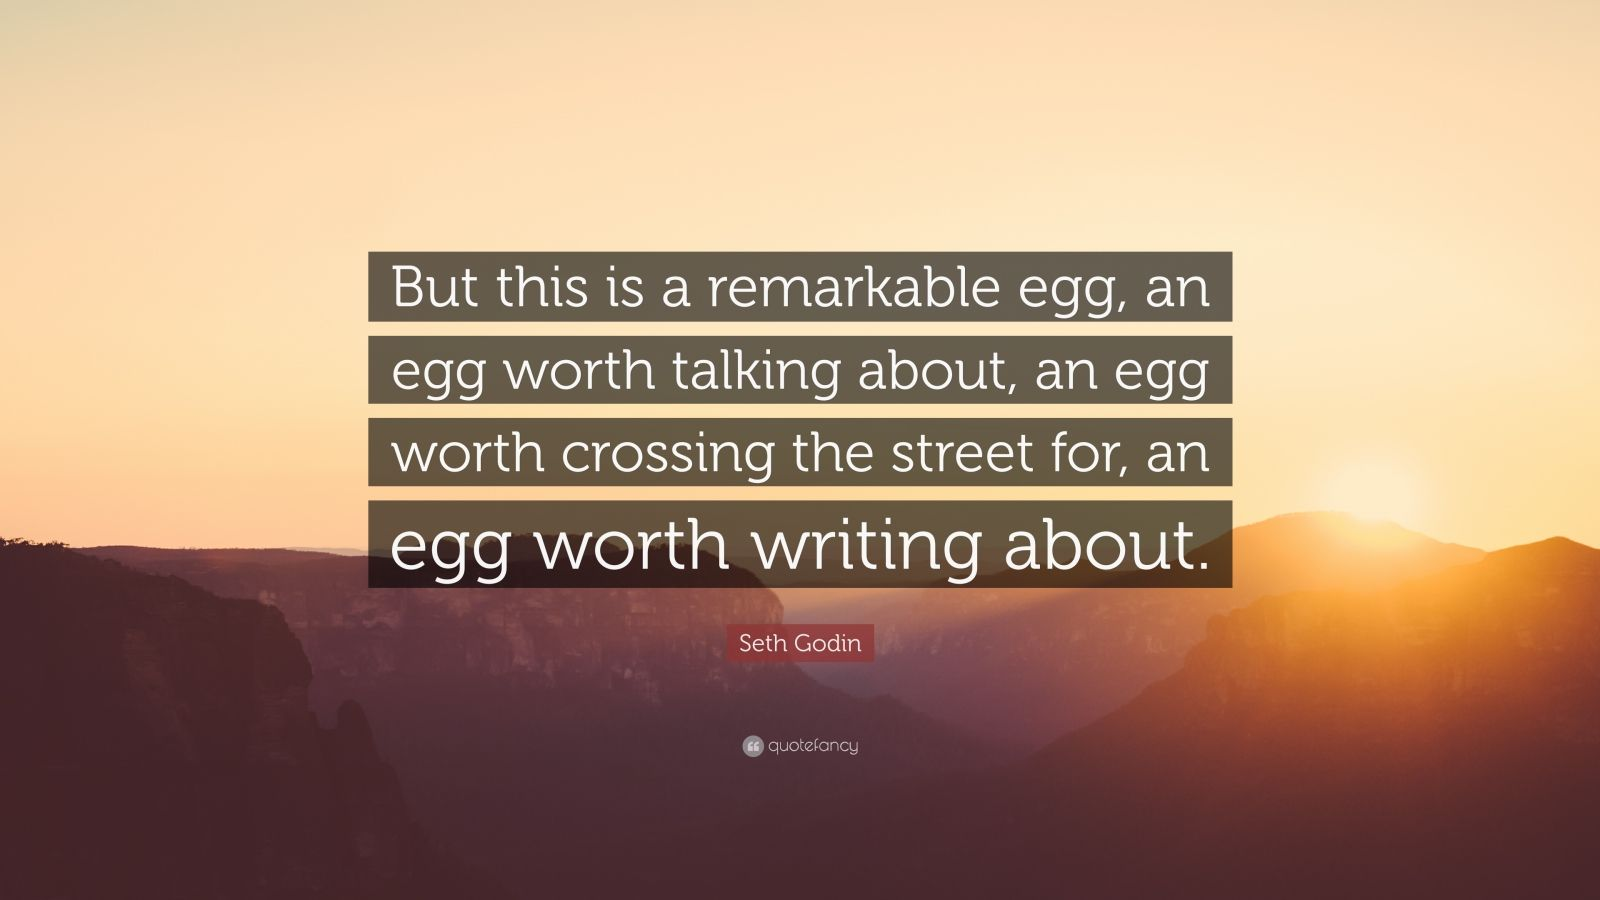 """Seth Godin Quote: """"But this is a remarkable egg, an egg worth talking about, an egg worth crossing the street for, an egg worth writing about."""""""